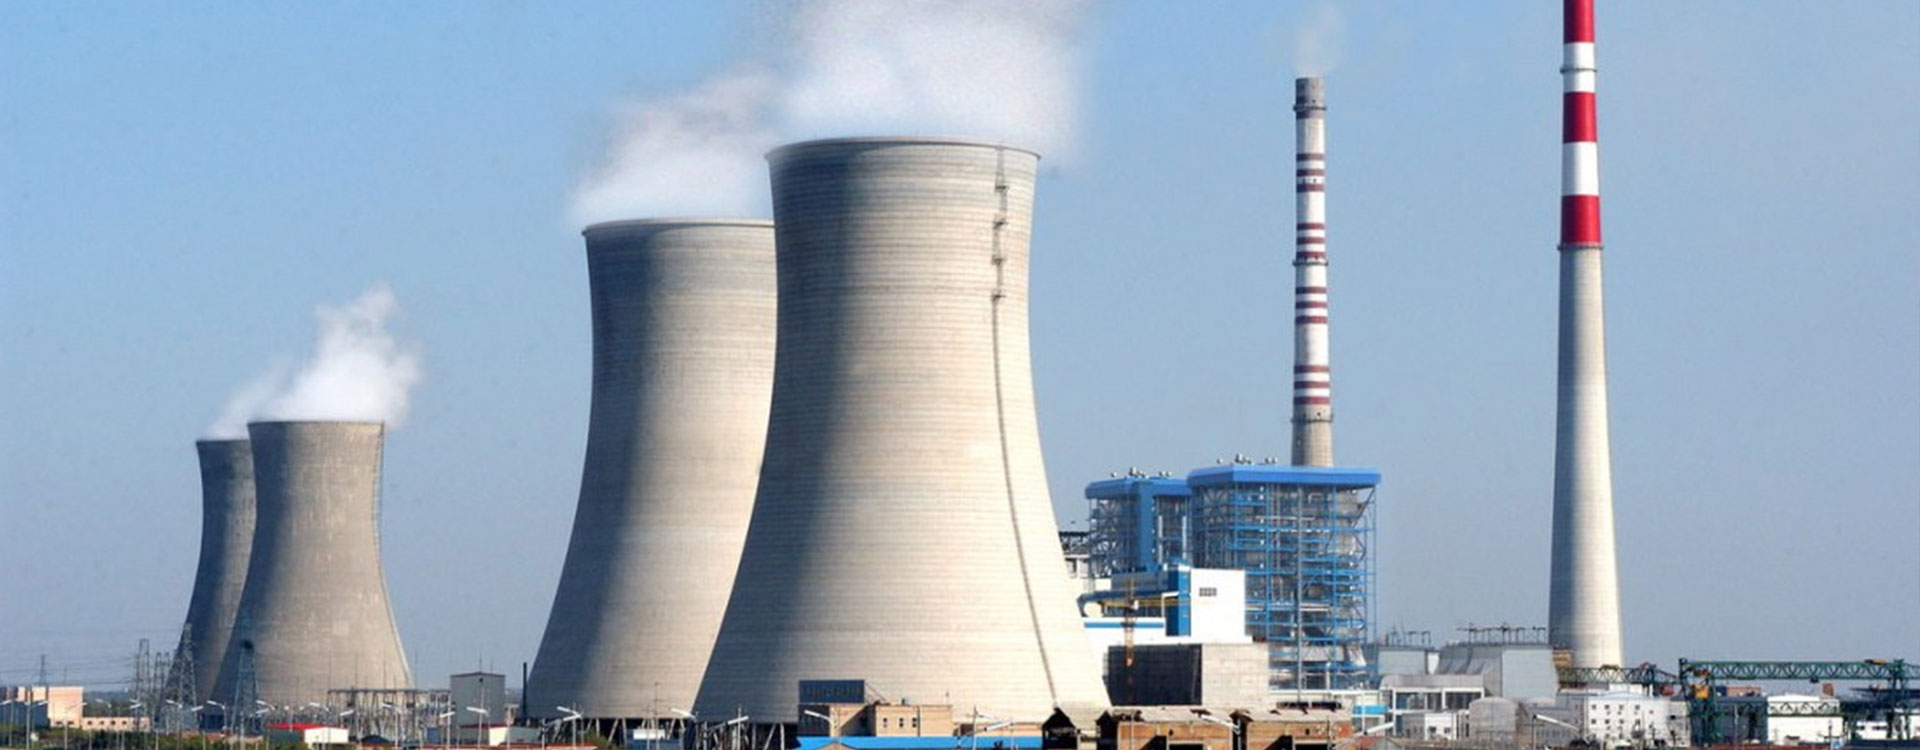 Coal Fired Thermal Power Plants